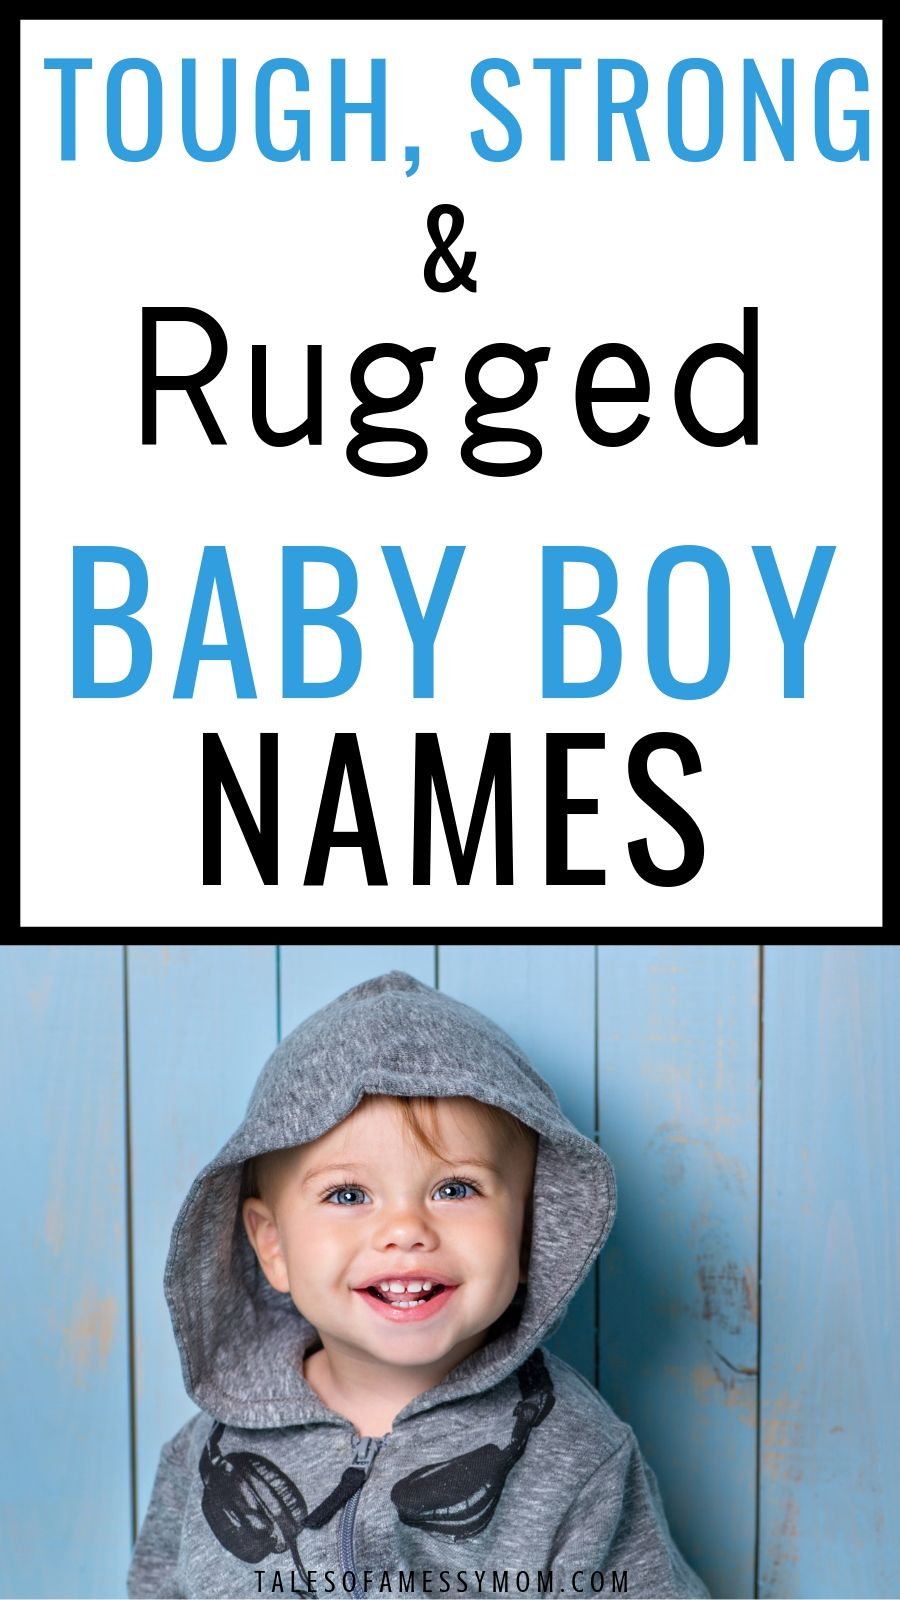 Strong and Rugged Baby Boy Names